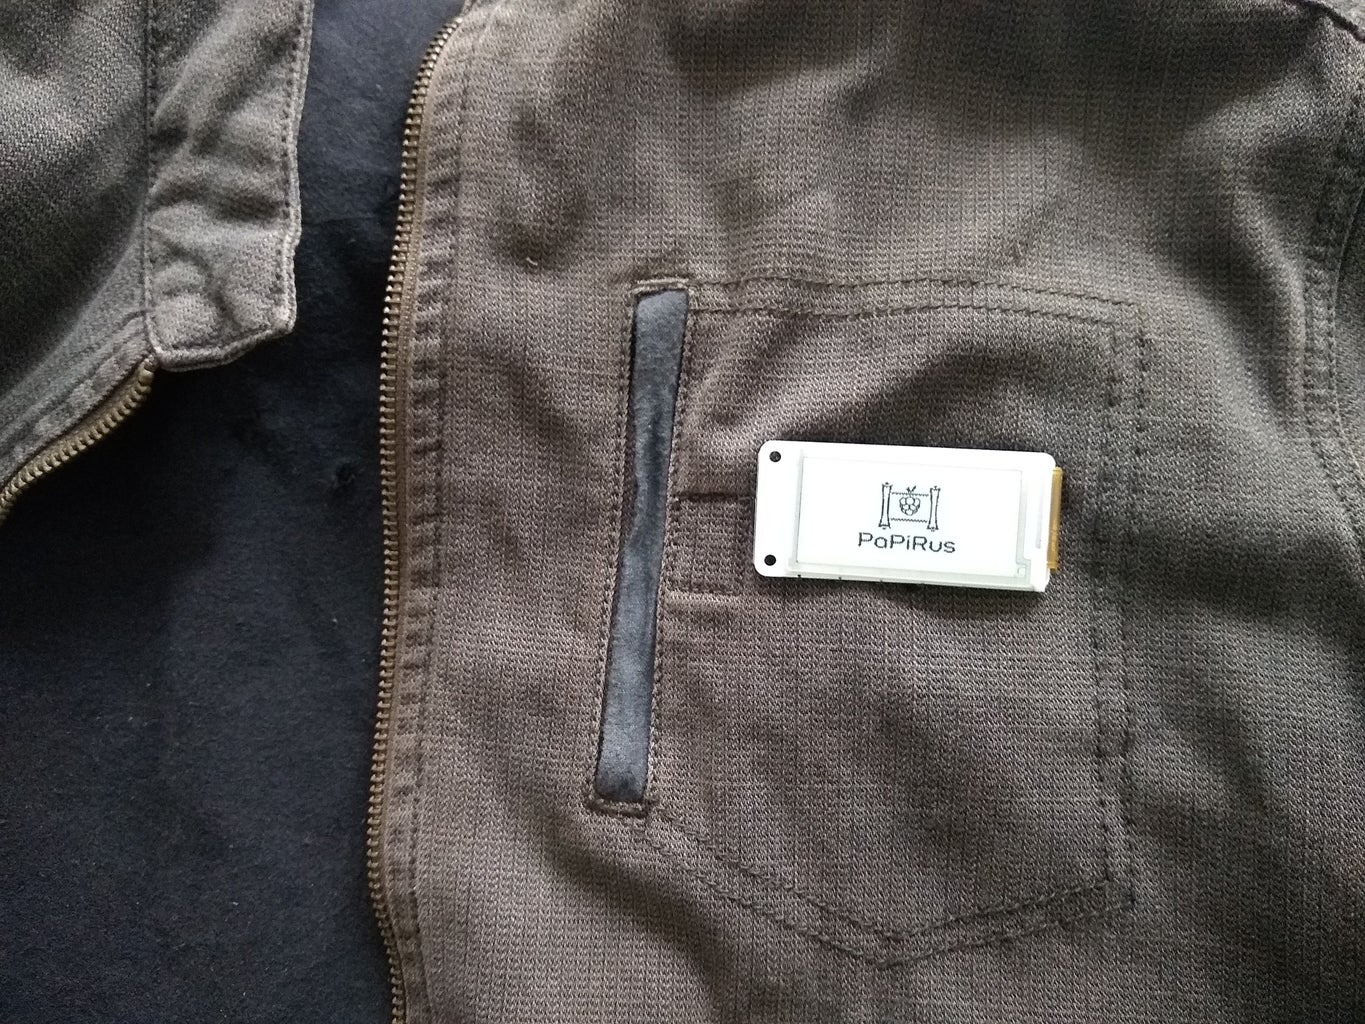 Adding the Badge to Your Jacket Pocket